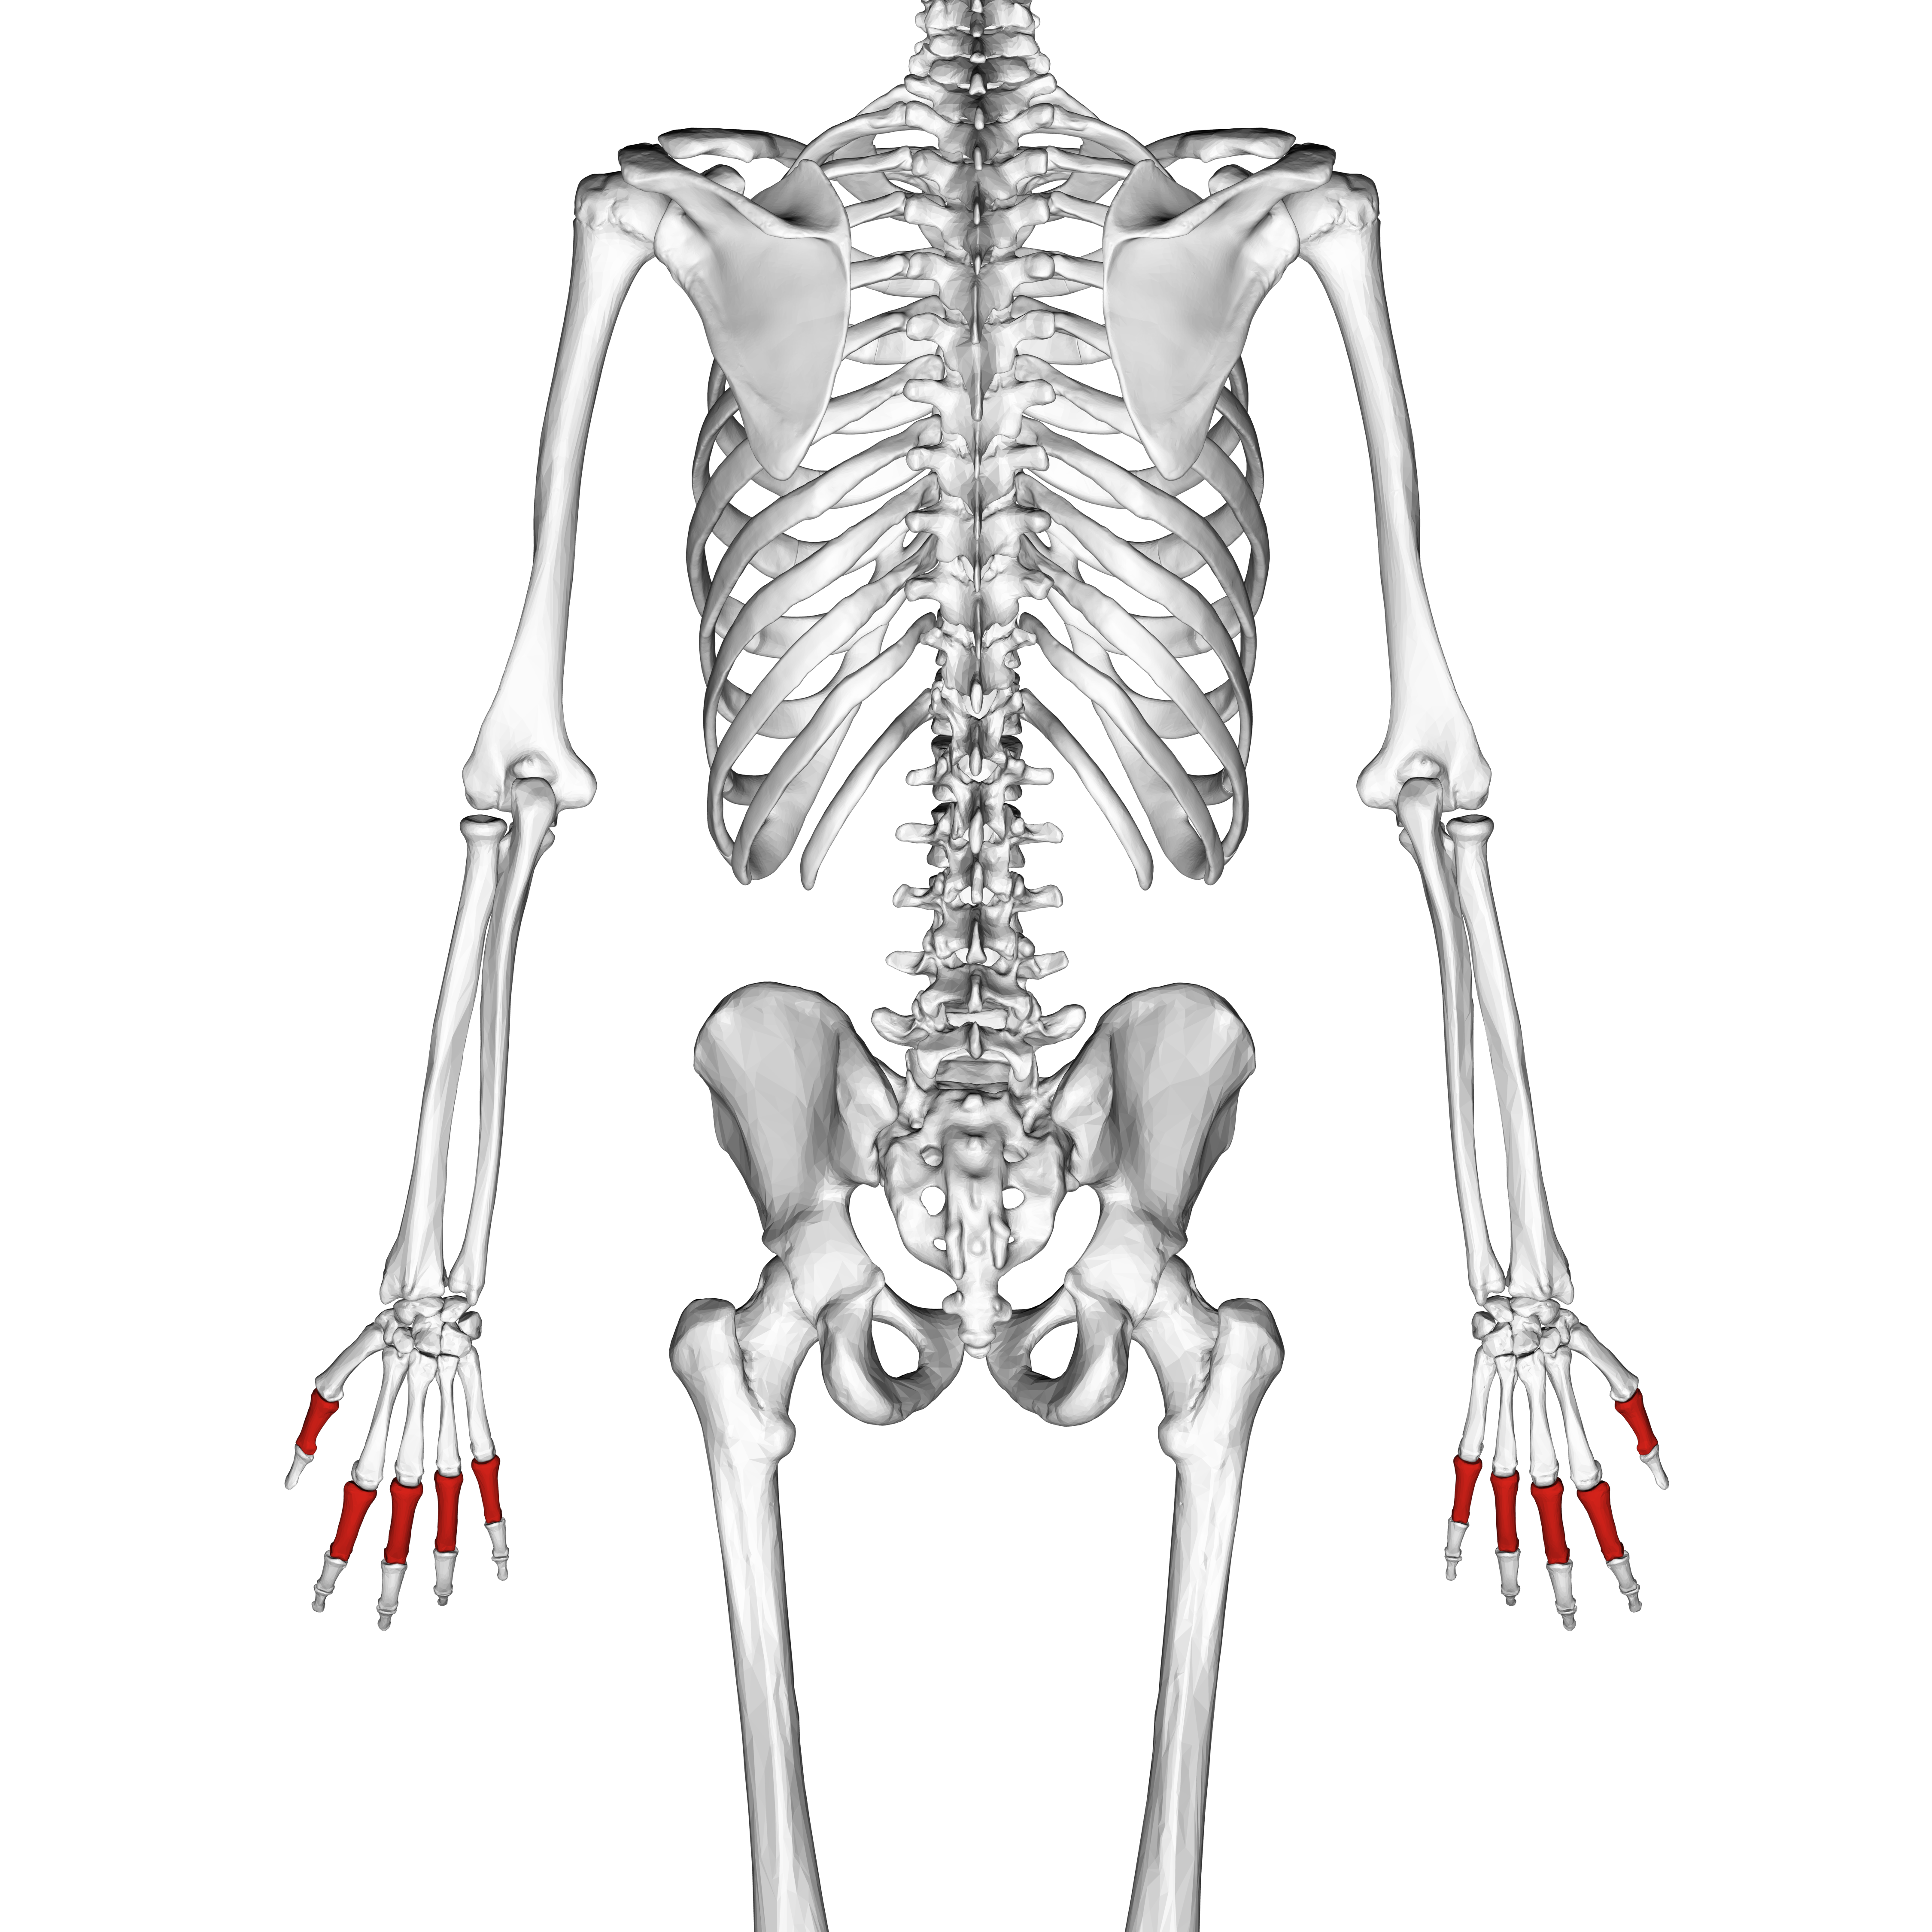 Fileproximal Phalanges Of The Hand 02 Dorsal Viewg Wikimedia